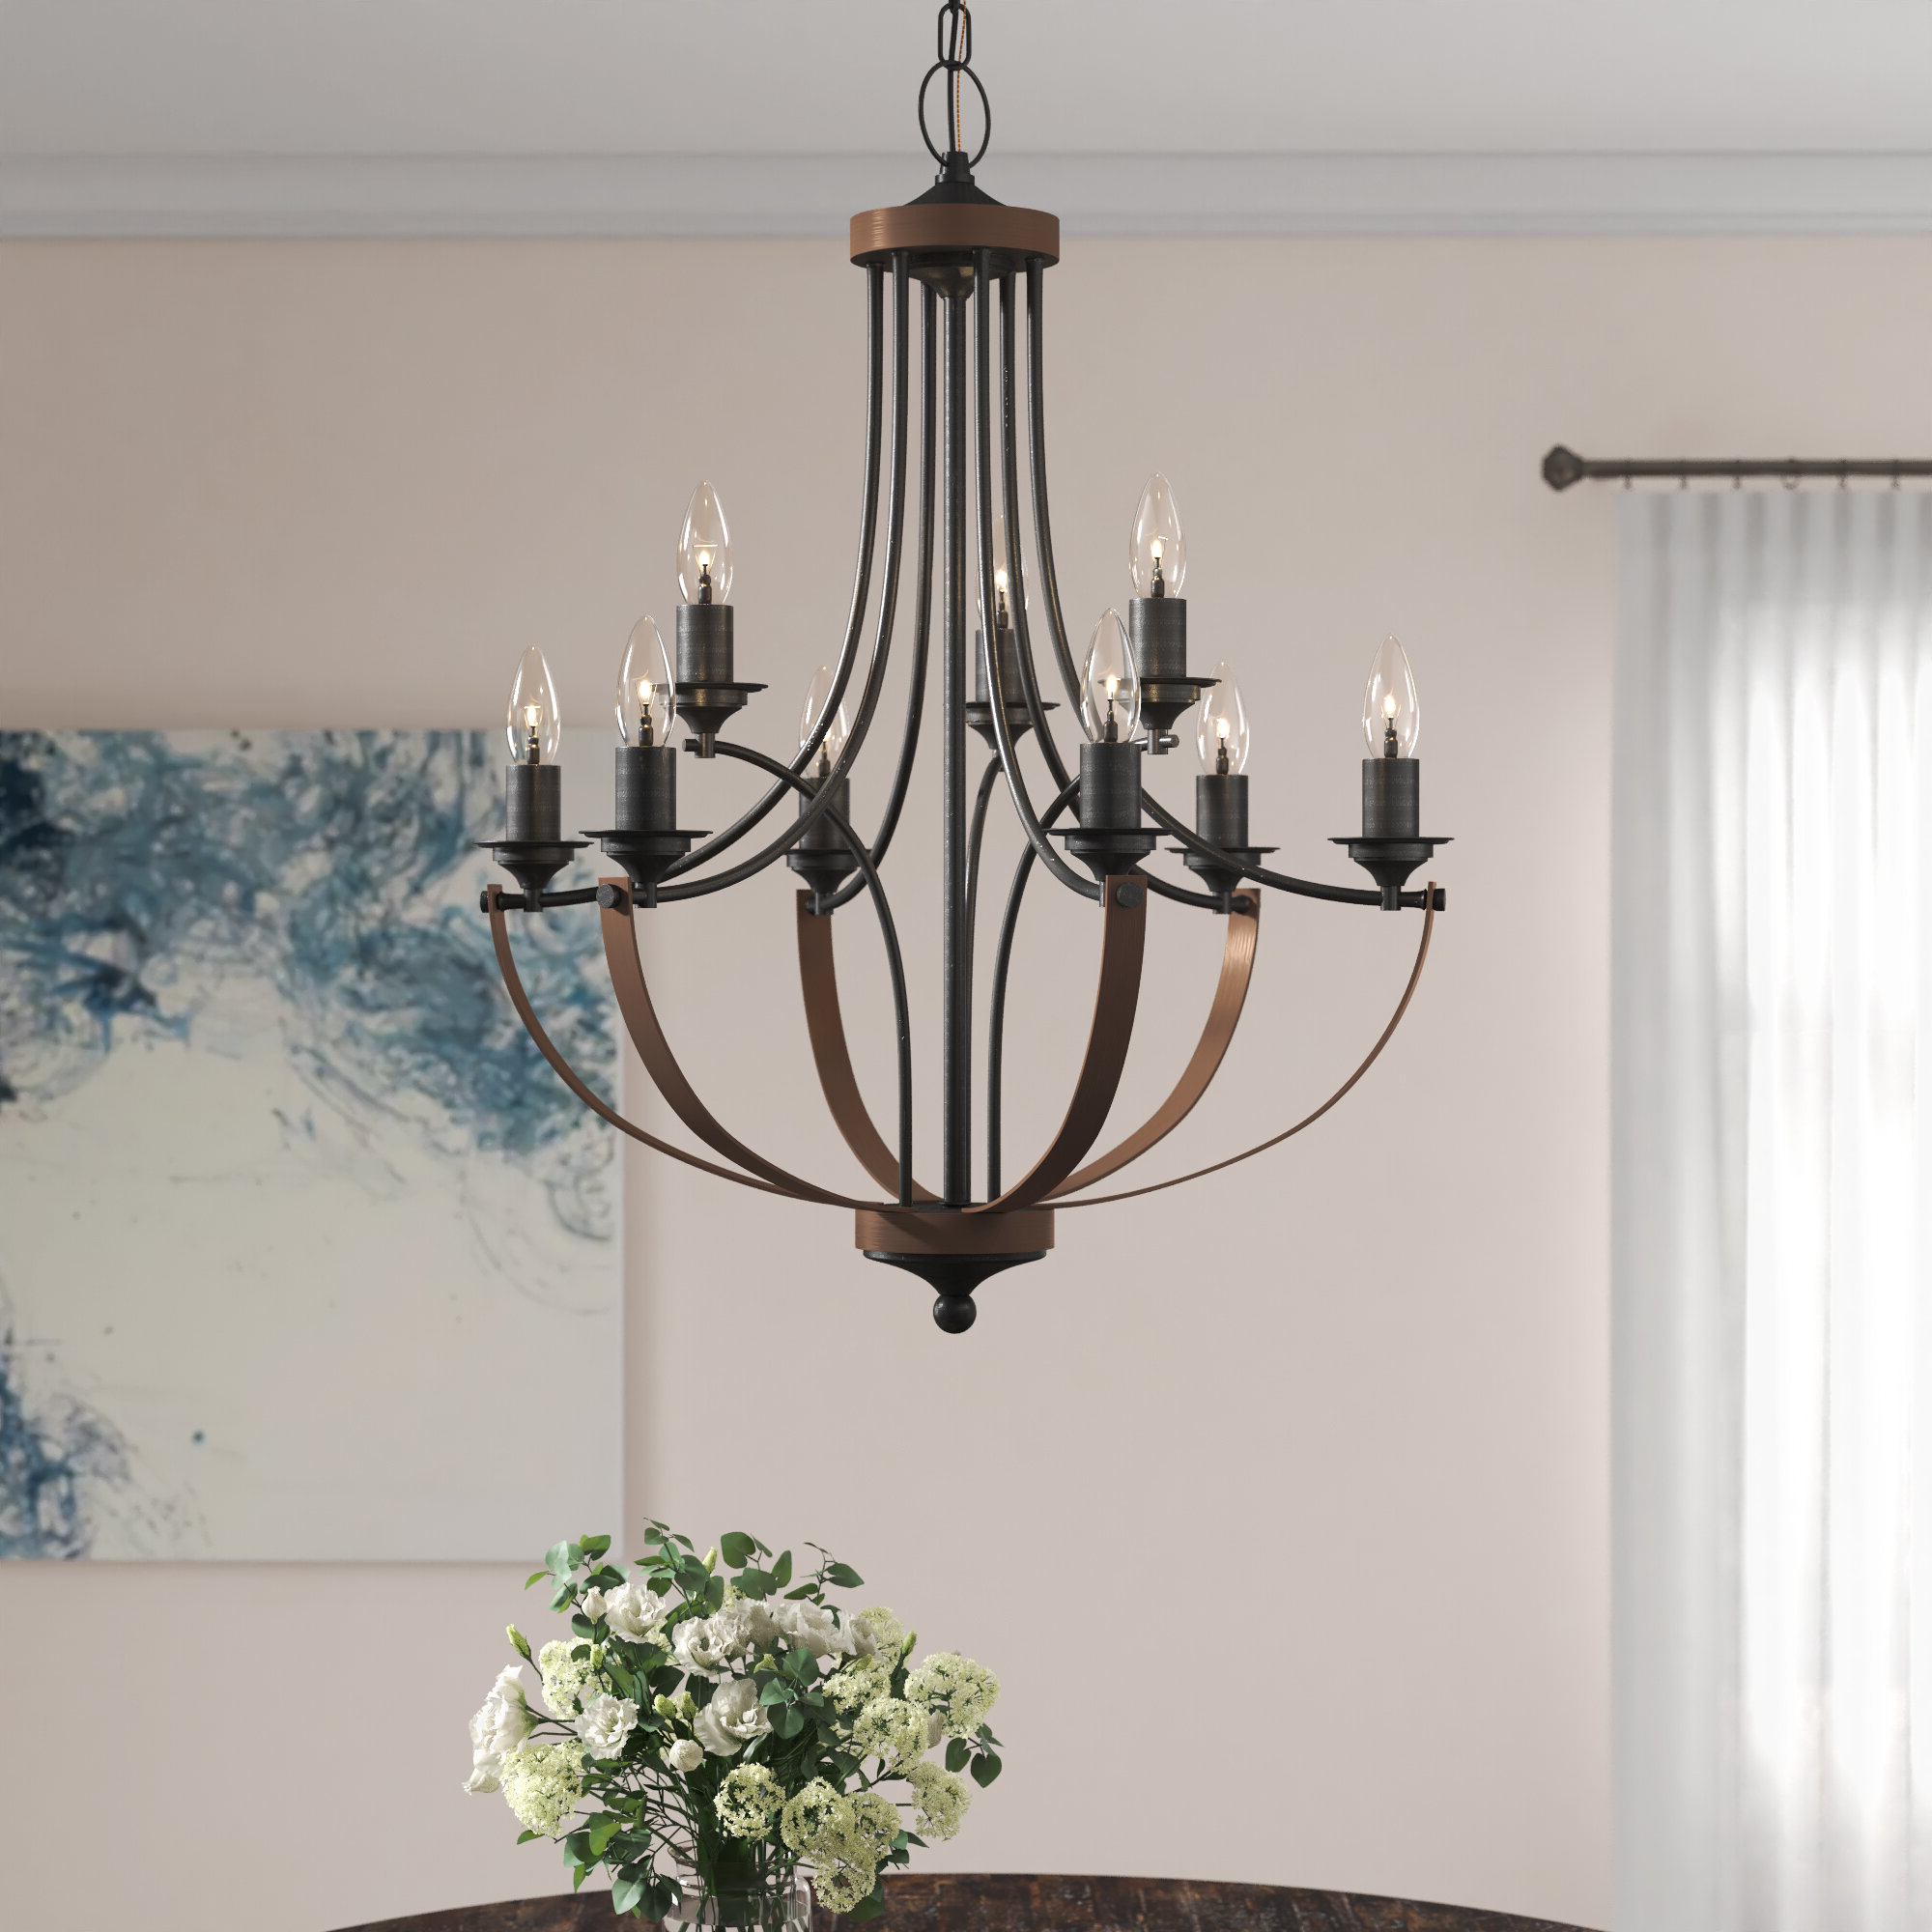 Camilla 9 Light Candle Style Chandelier With Regard To Well Known Camilla 9 Light Candle Style Chandeliers (View 2 of 20)